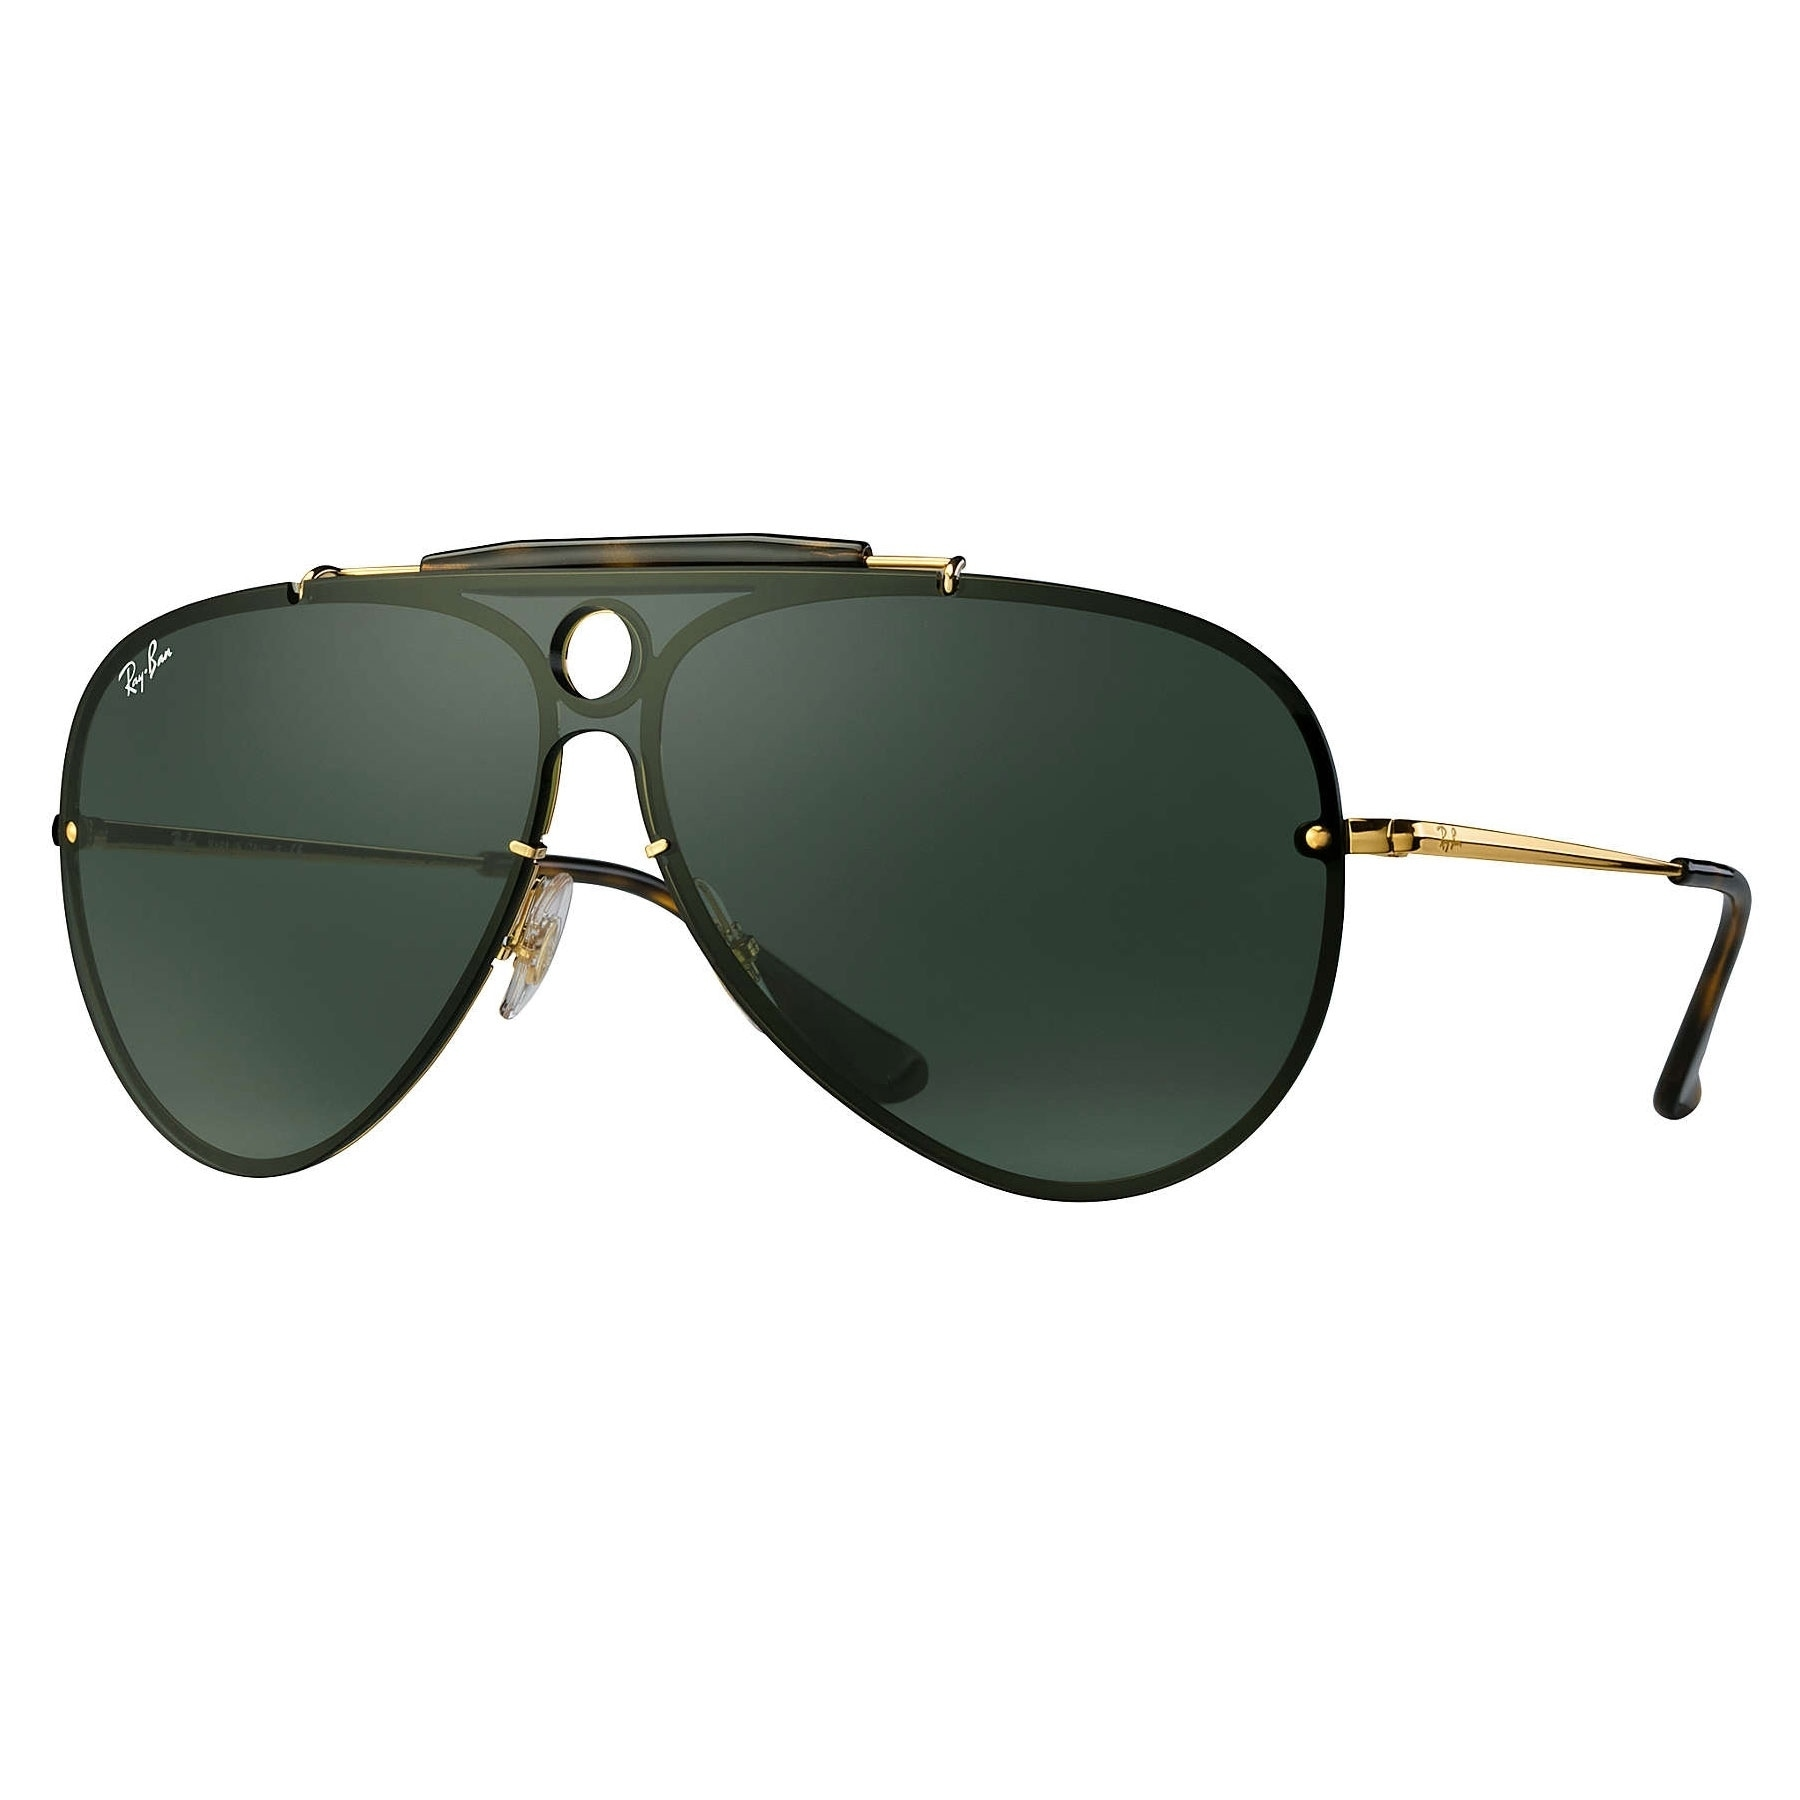 581ad040e4 Ray-Ban RB3581N Blaze Shooter Sunglasses Gold  Green Classic 32mm - Black